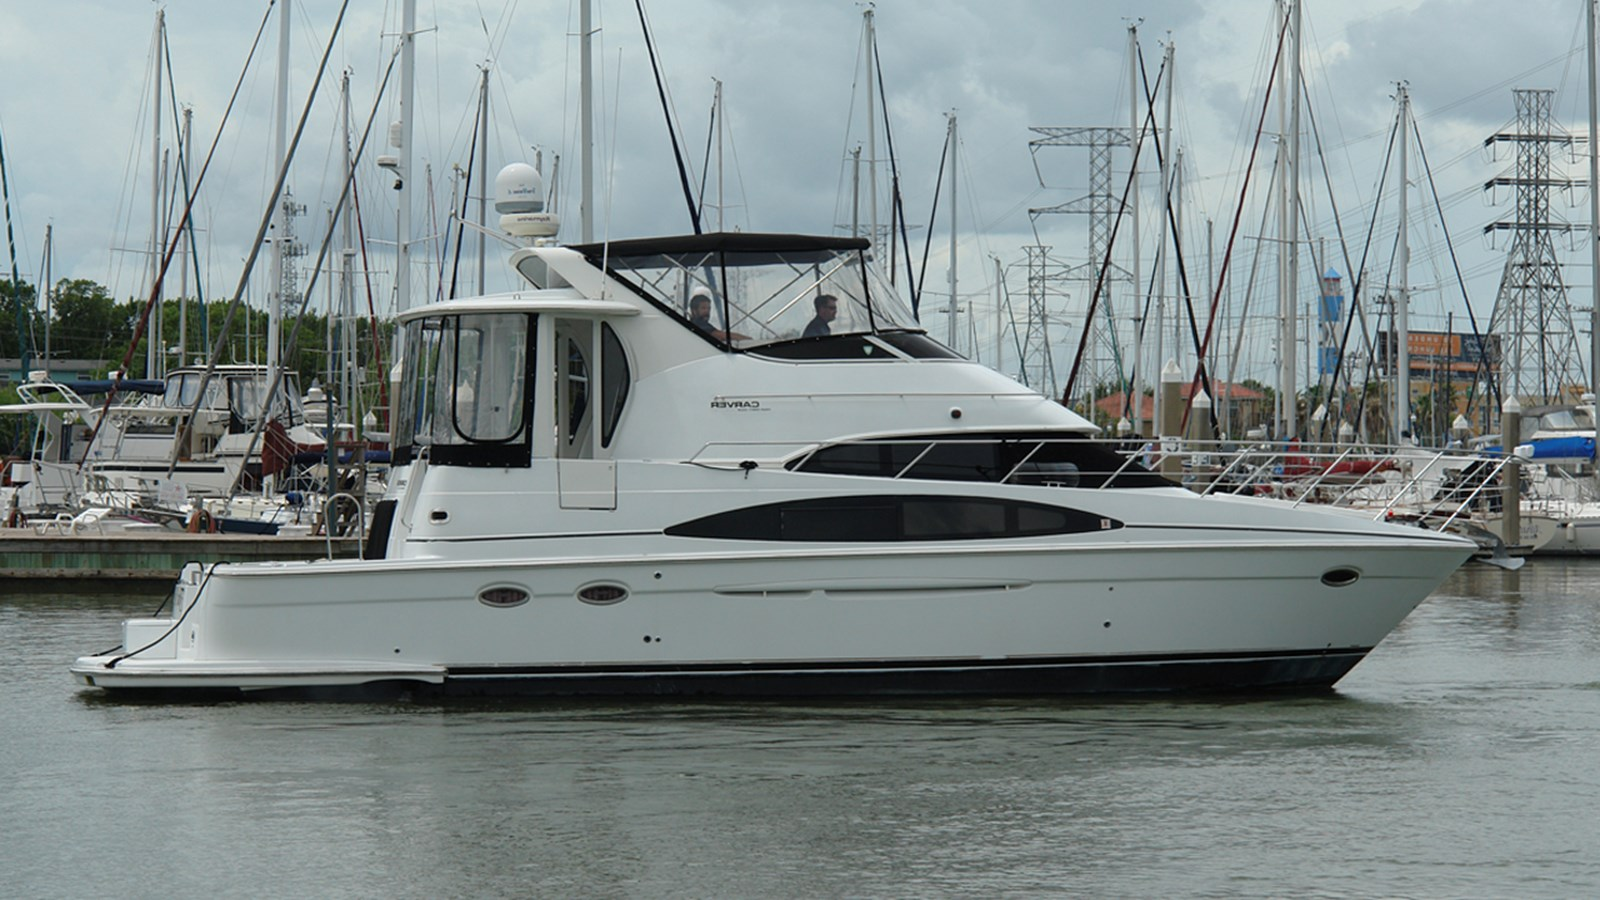 2003 CARVER 444 Cockpit Motor Yacht For Sale